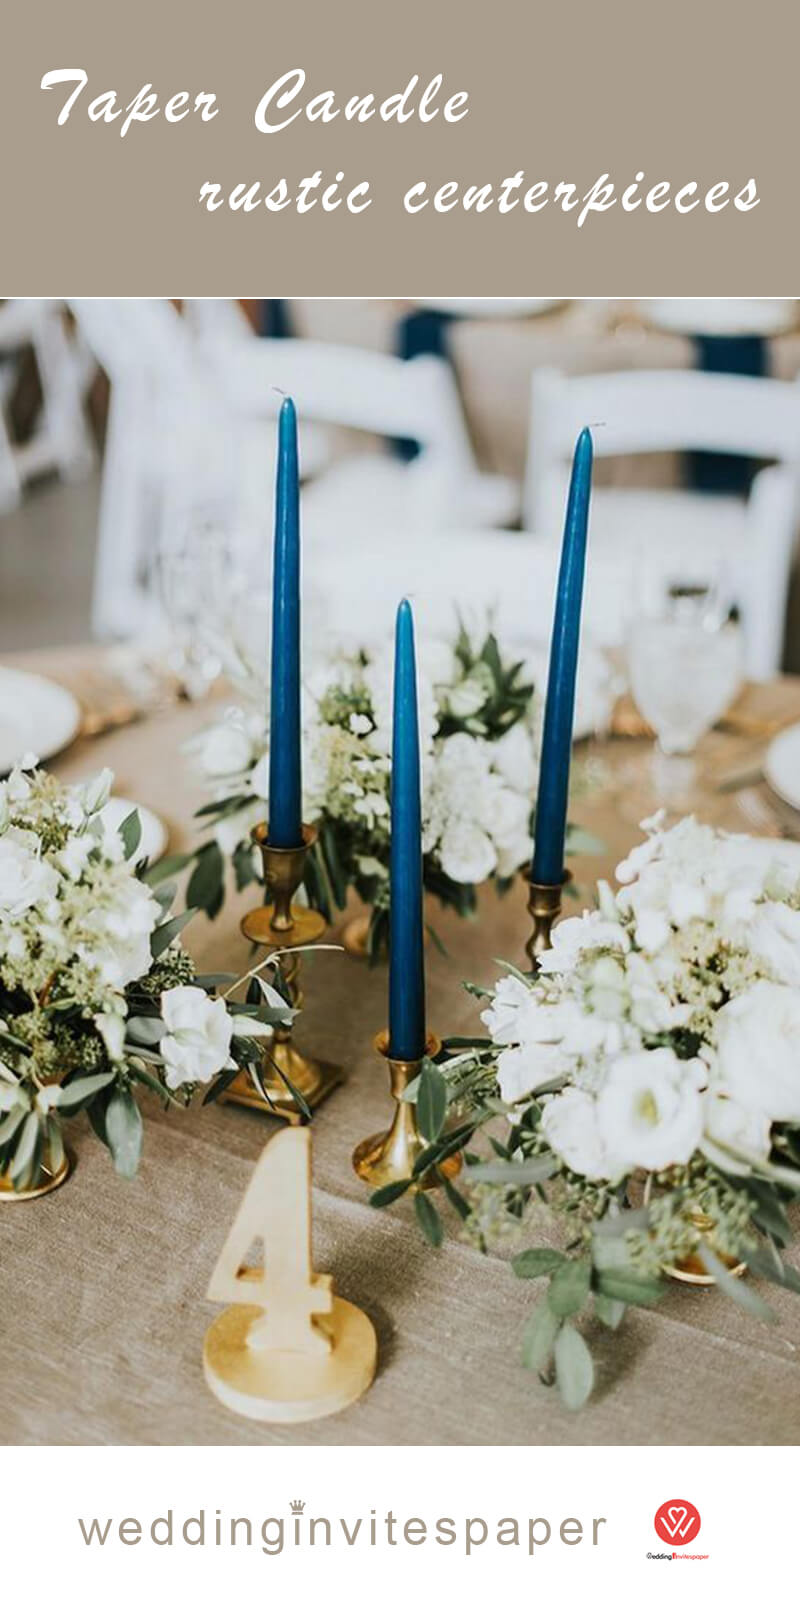 11 Taper Candle rustic centerpieces.jpg